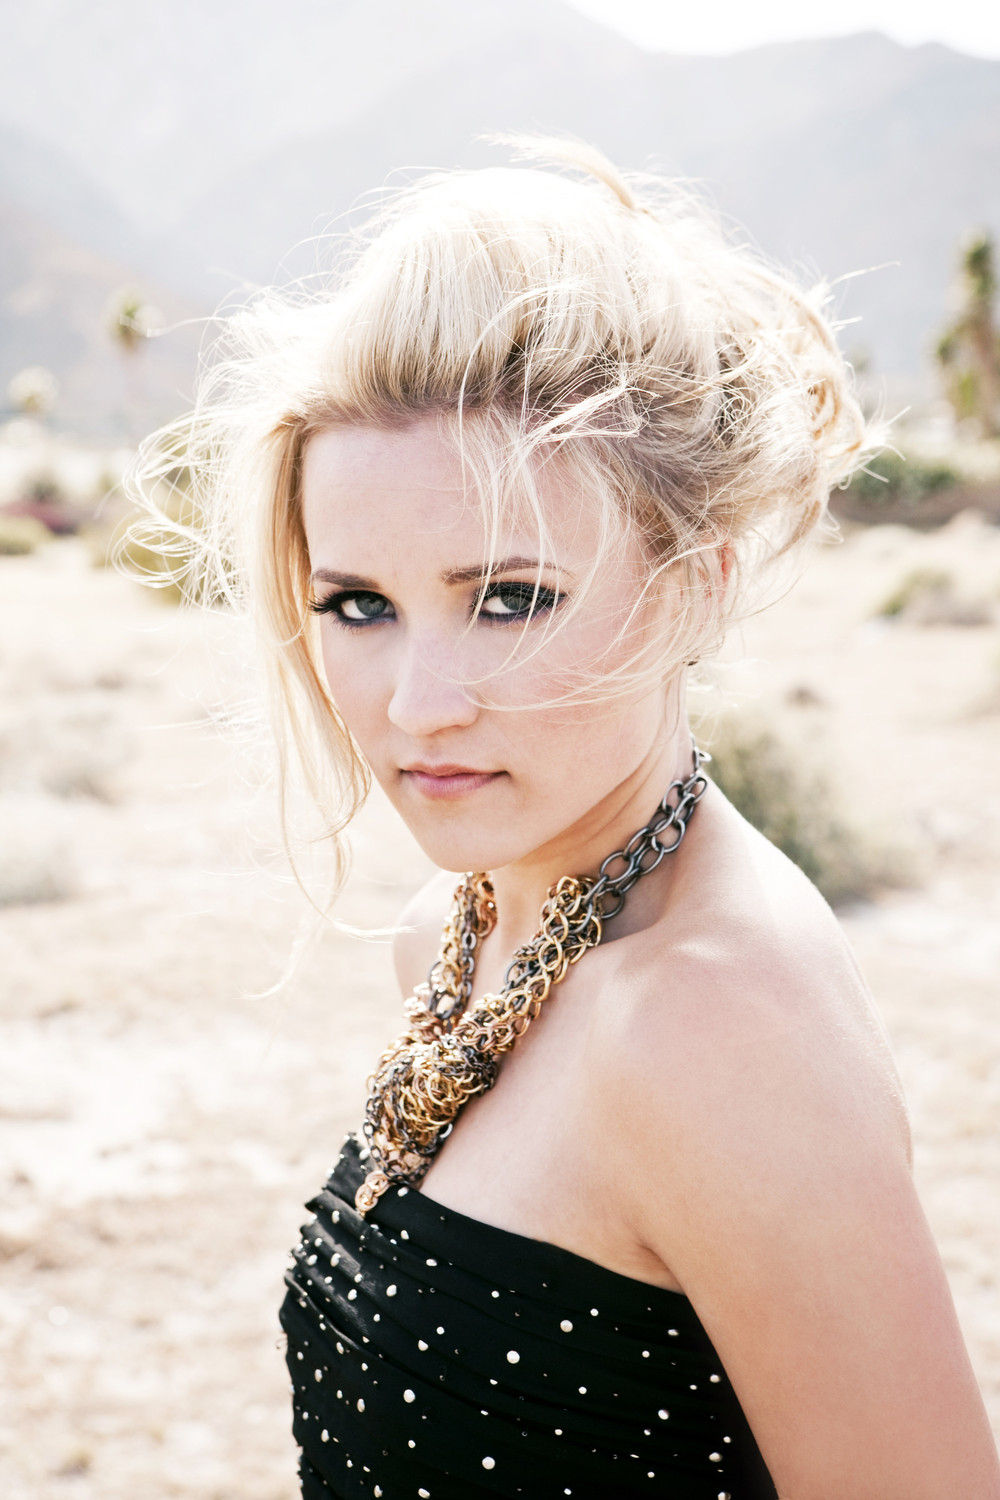 ICloud Emily Osment nude (52 foto and video), Sexy, Fappening, Twitter, butt 2006